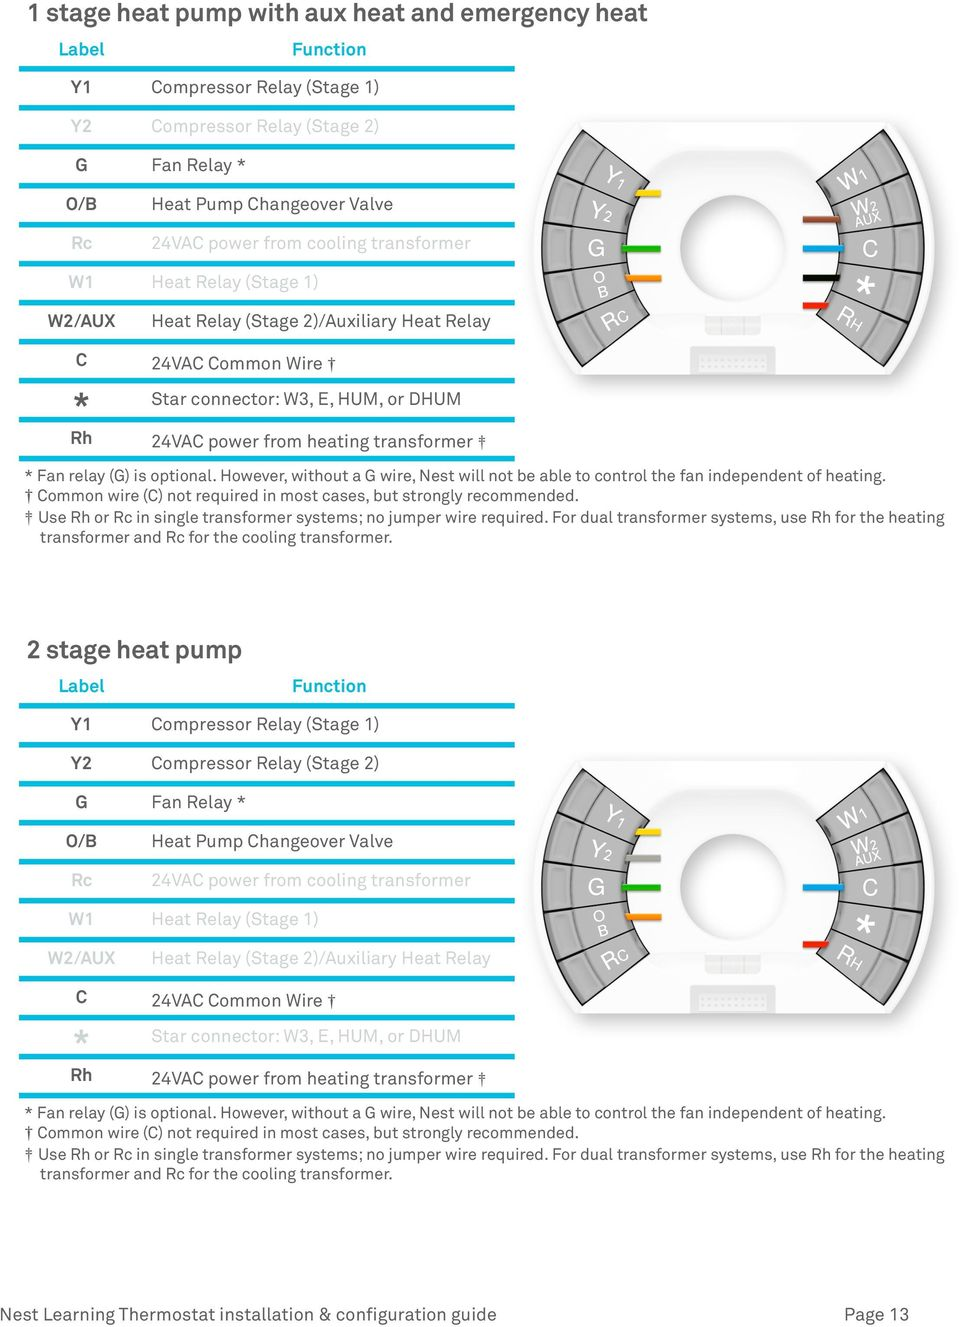 Nest Thermostat Wiring Diagram Heat Pump from static-cdn.imageservice.cloud